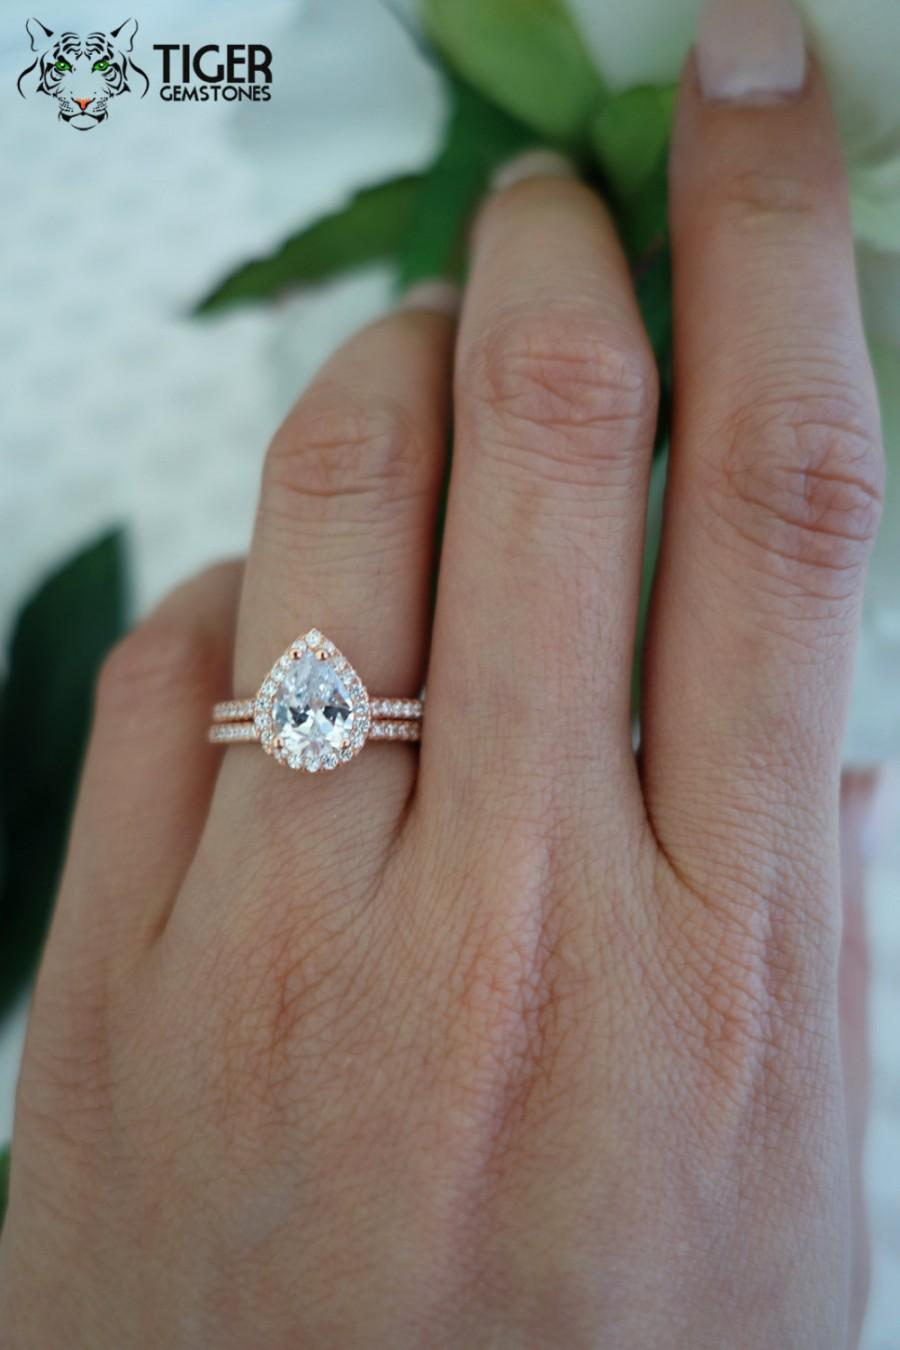 15 Carat Pear Cut Halo Engagement Ring Wedding Band Flawless Man